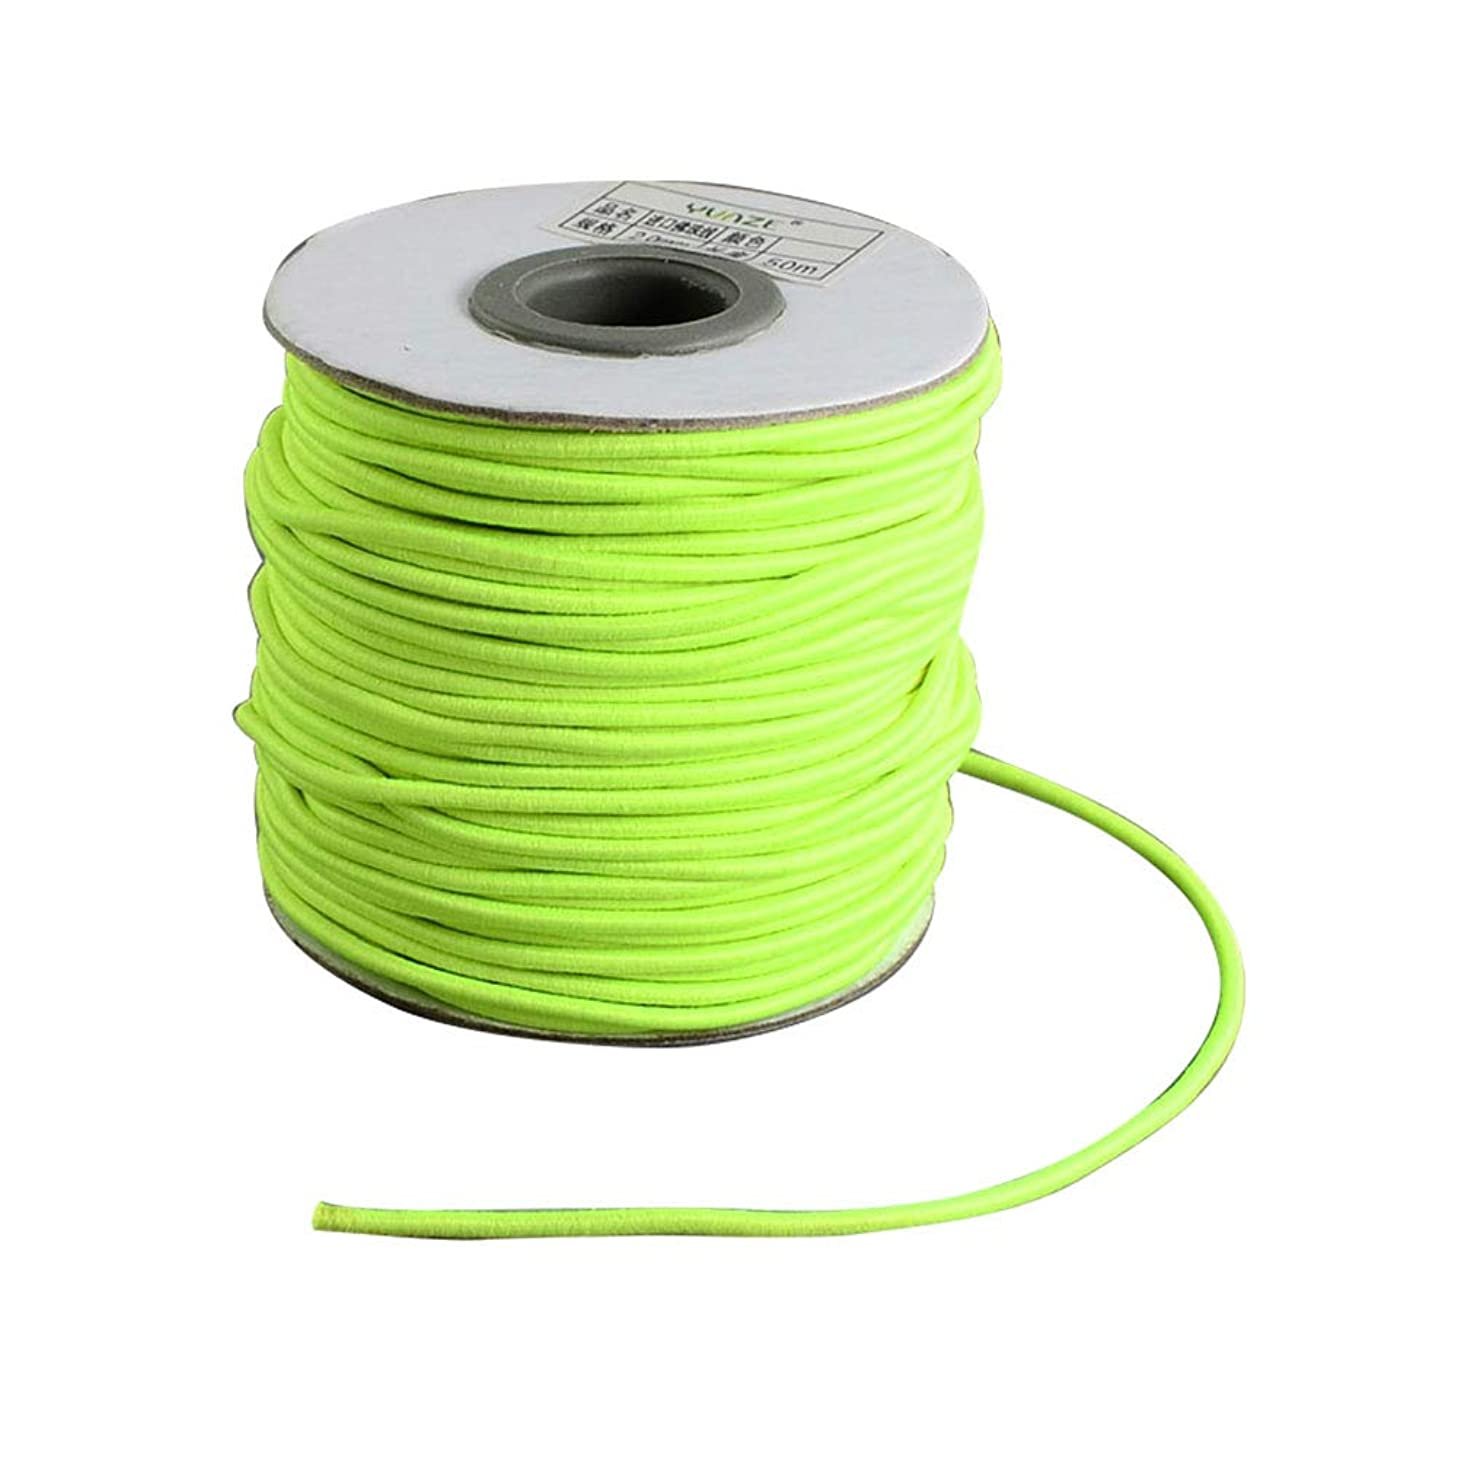 NBEADS A Roll of 70m Green Yellow Round Elastic Cord Beading Crafting Stretch String, with Nylon Outside and Rubber Inside, 2mm